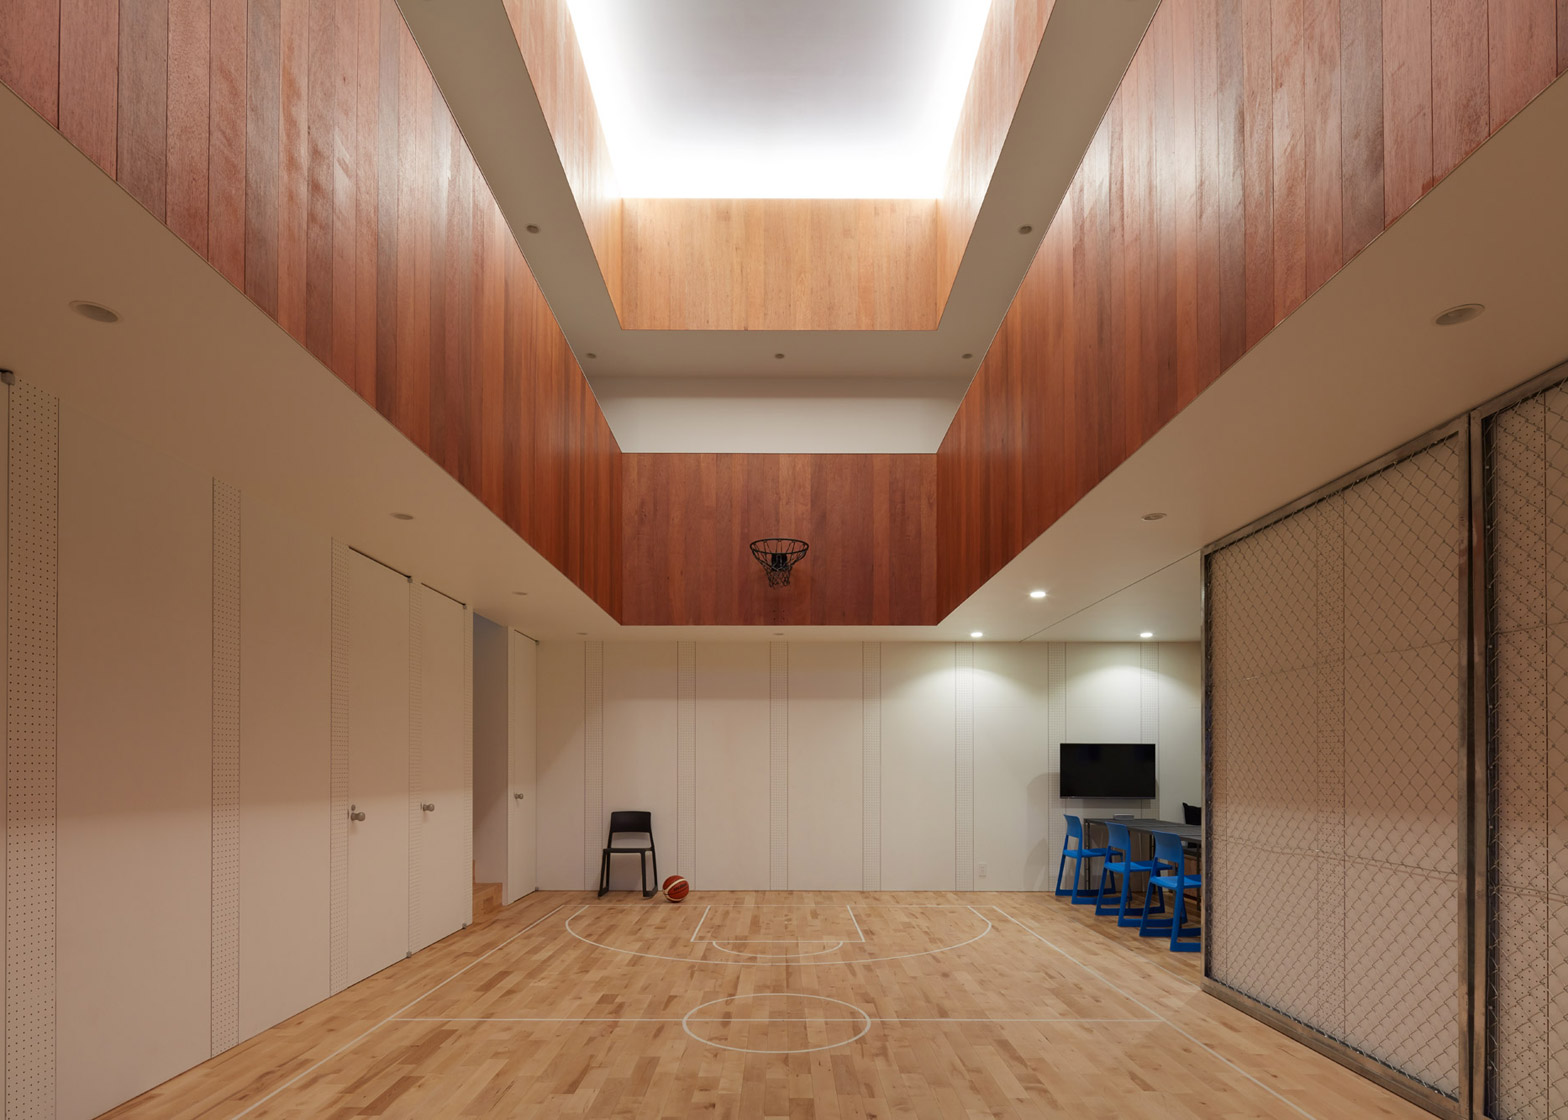 A House In Japan Has An Indoor Basketball Court